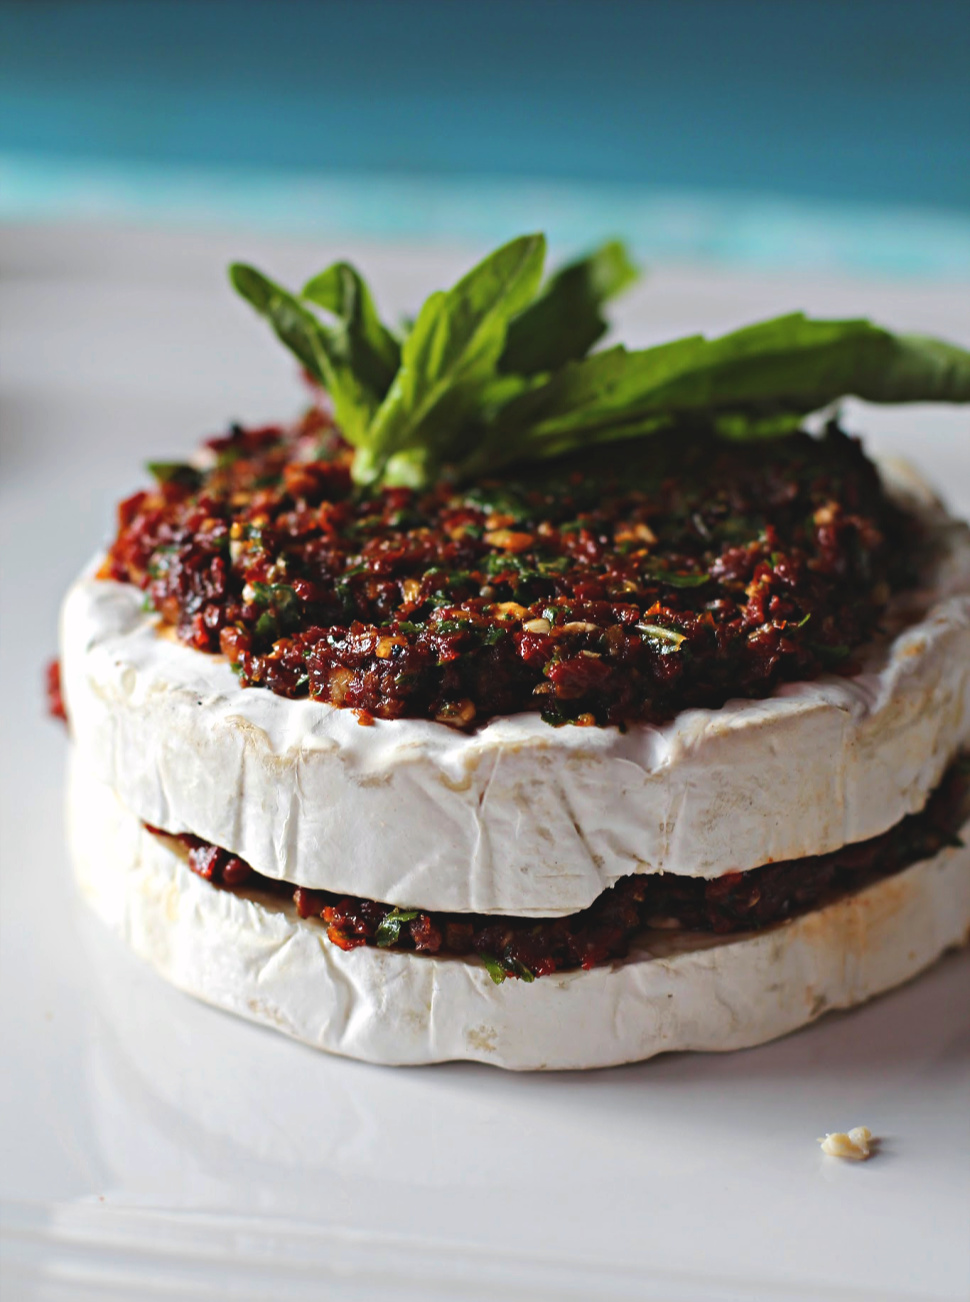 Sun dried tomatoes and basil spread on a wheel of brie cheese and garnished with fresh basil